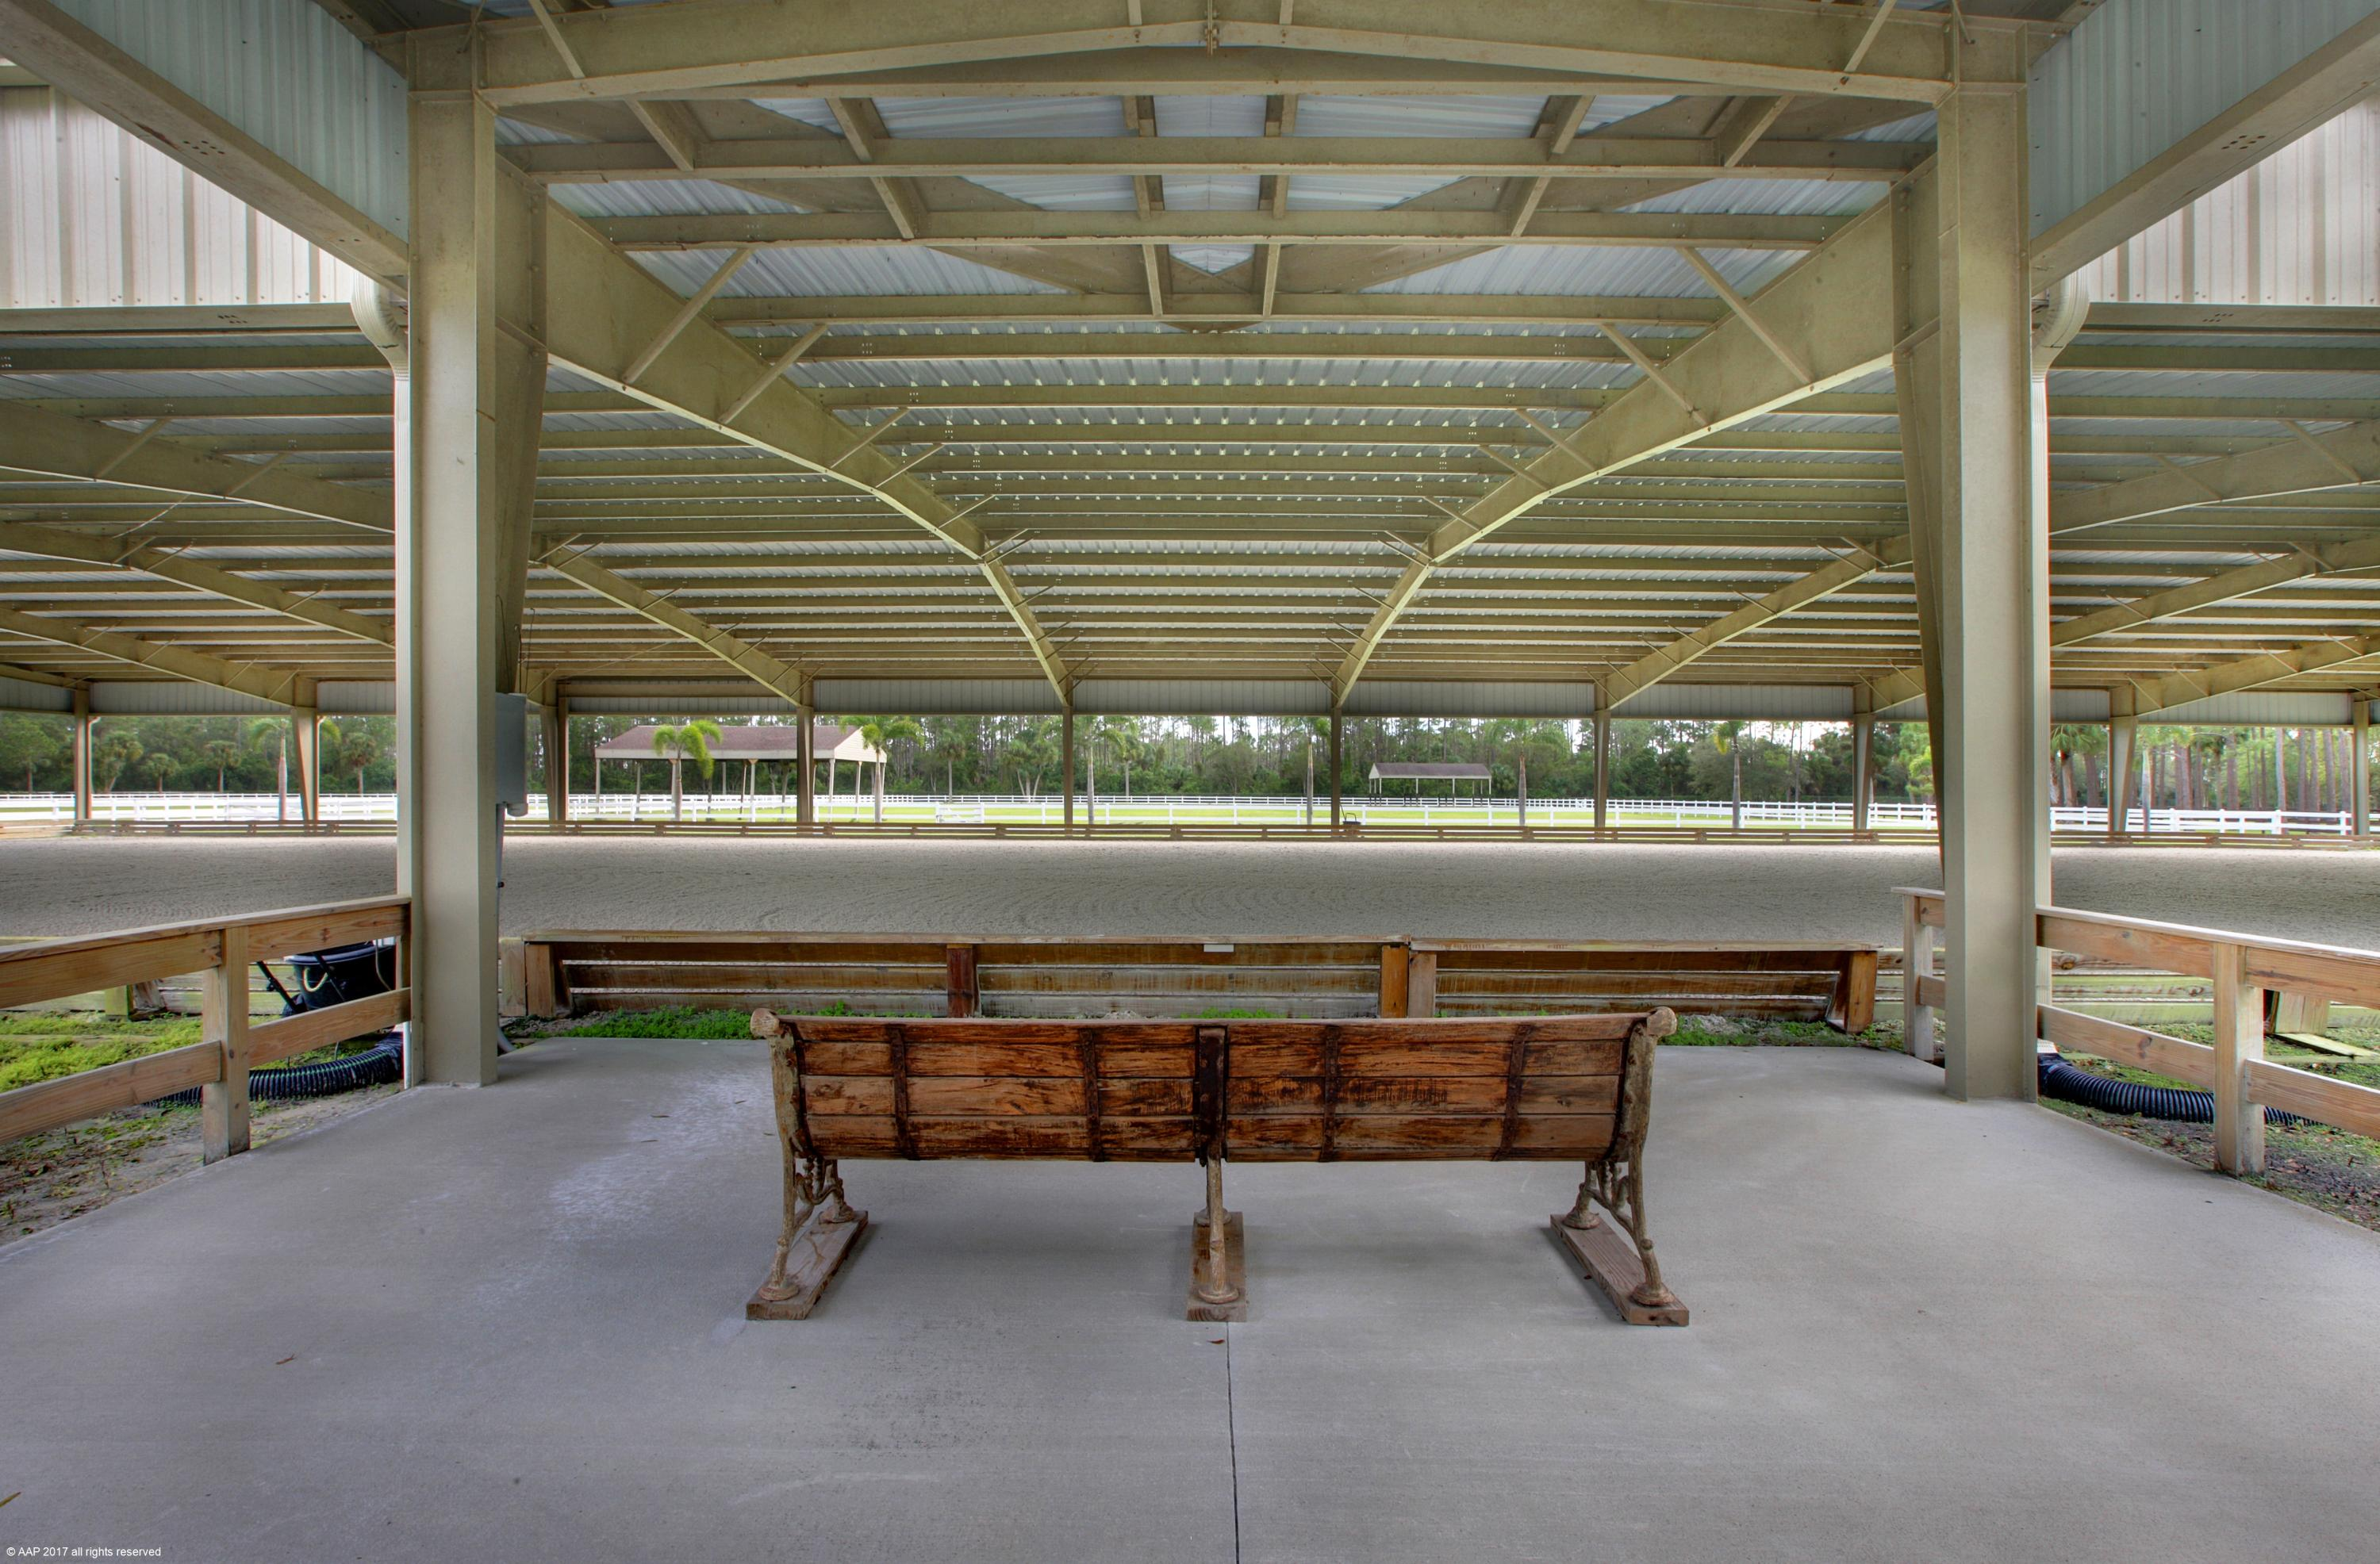 Viewing Area at covered arena